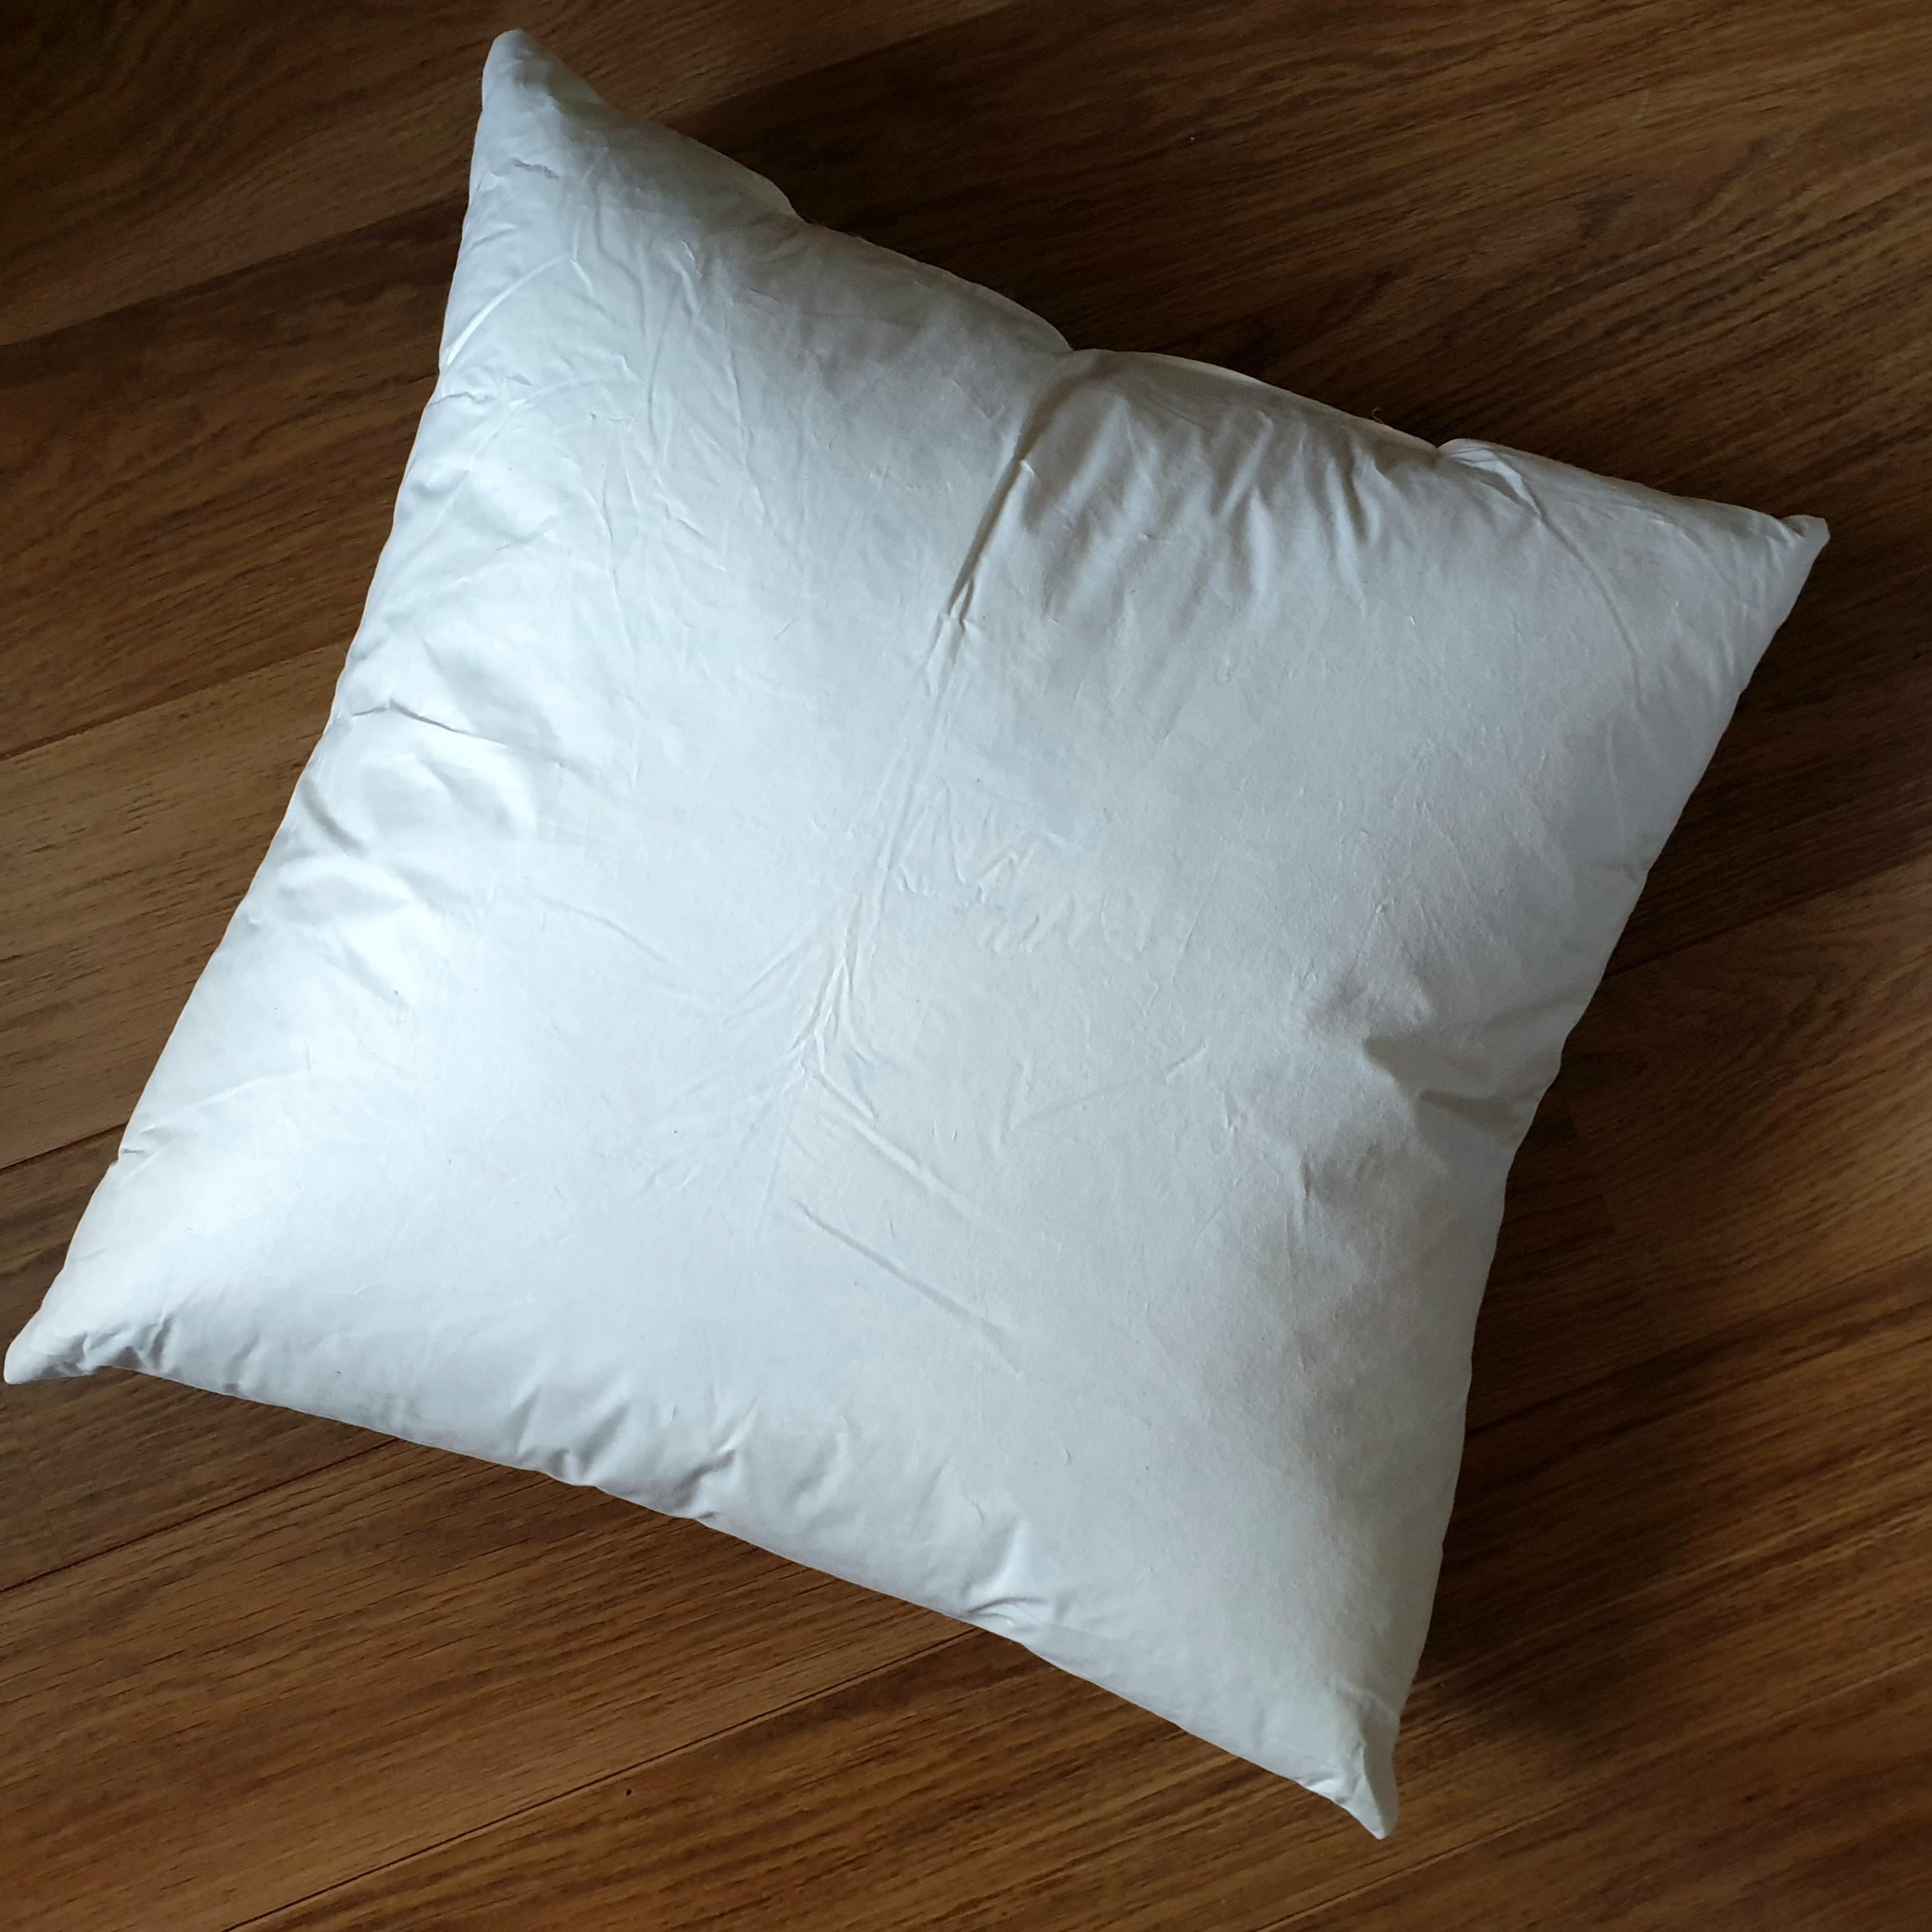 60cm cushion inner pad generously filled with 100% white duck feathers in ecru cream 100% cotton outer cover.